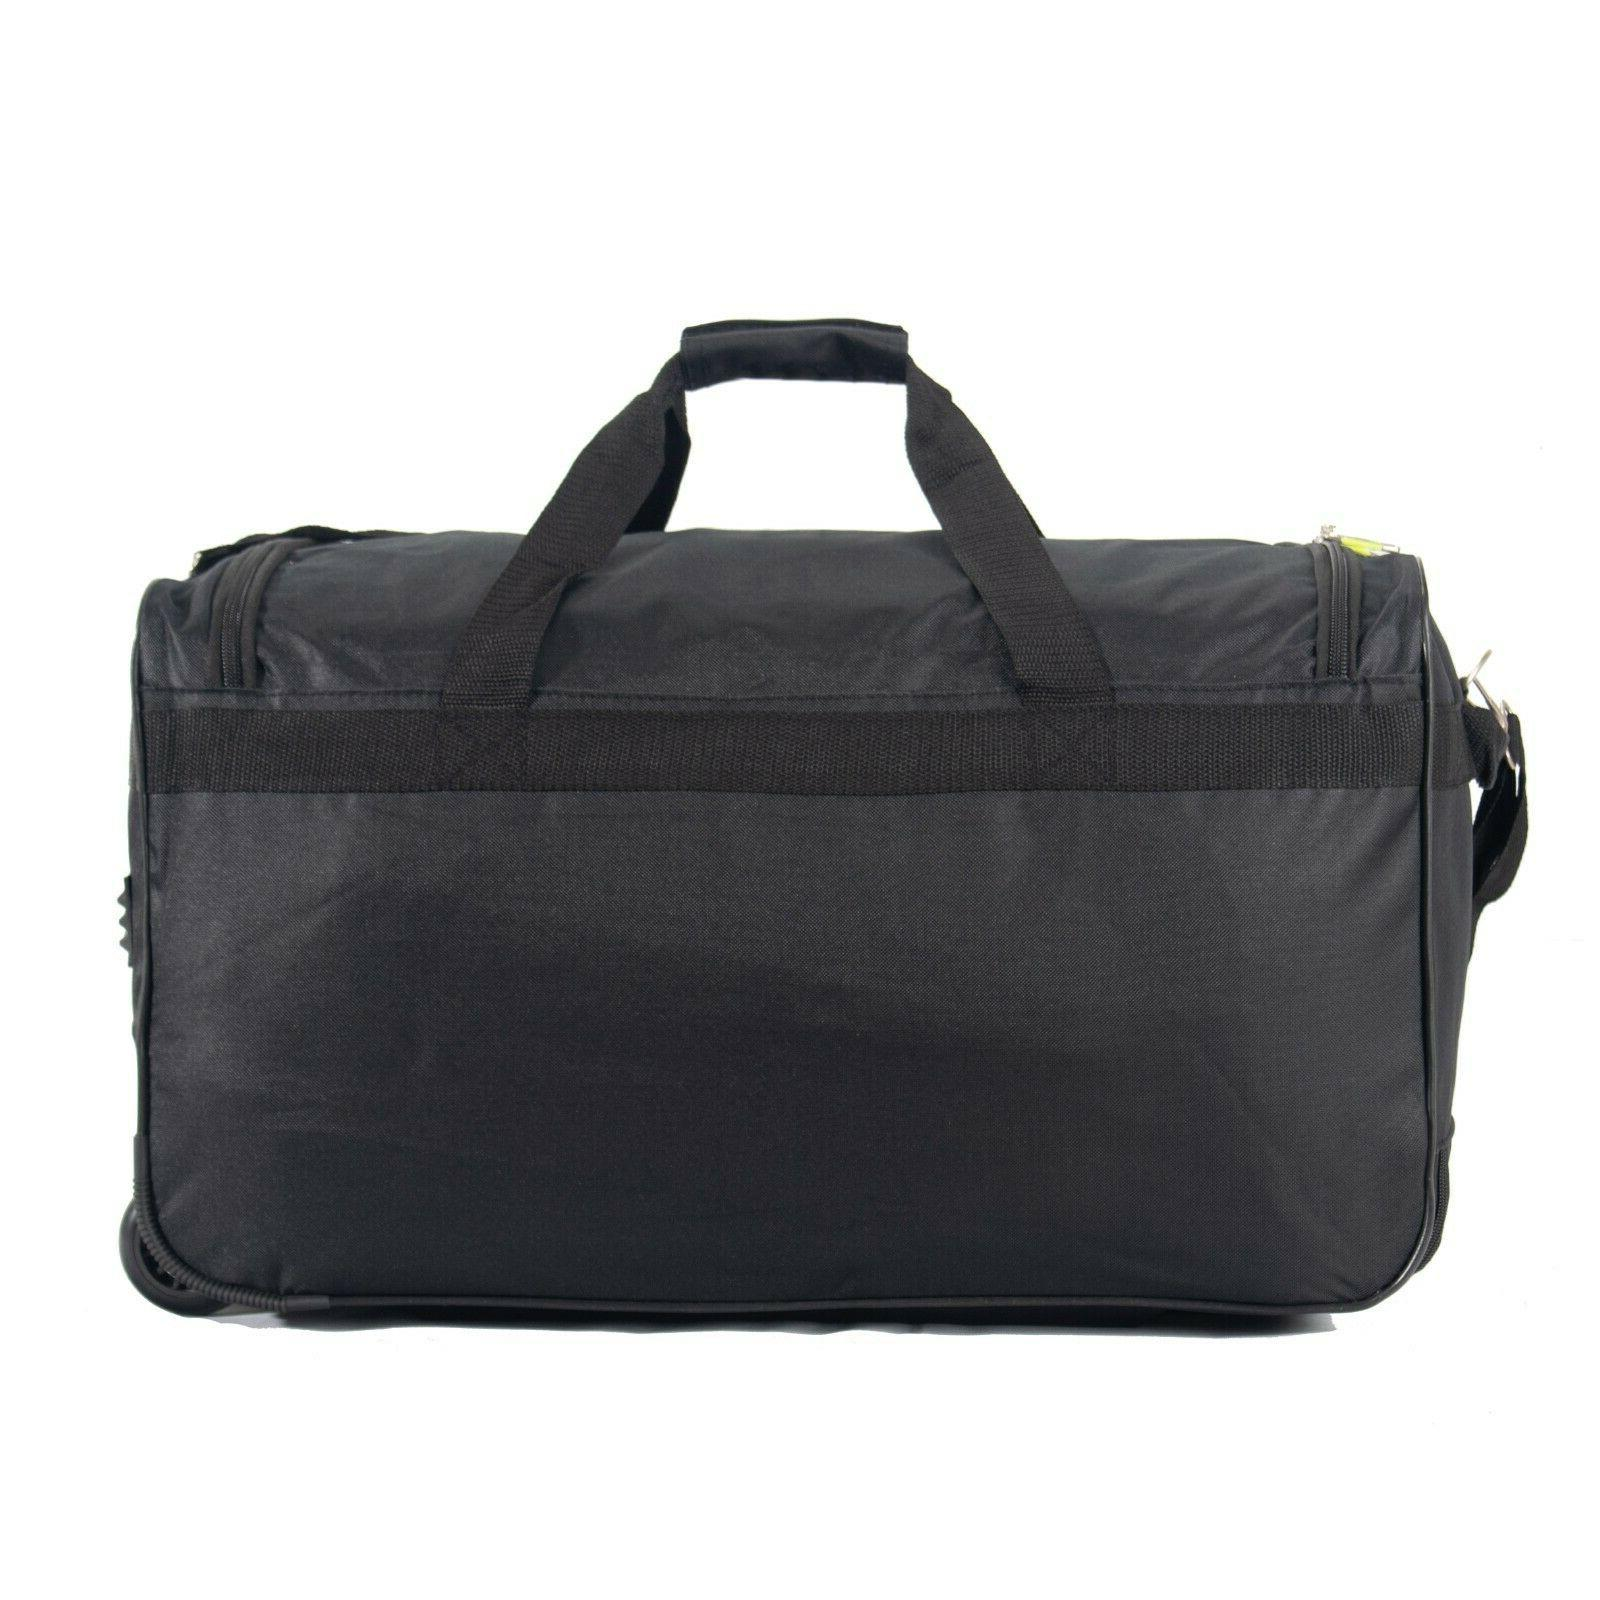 "22"" Rolling Bag On Travel Suitcase"